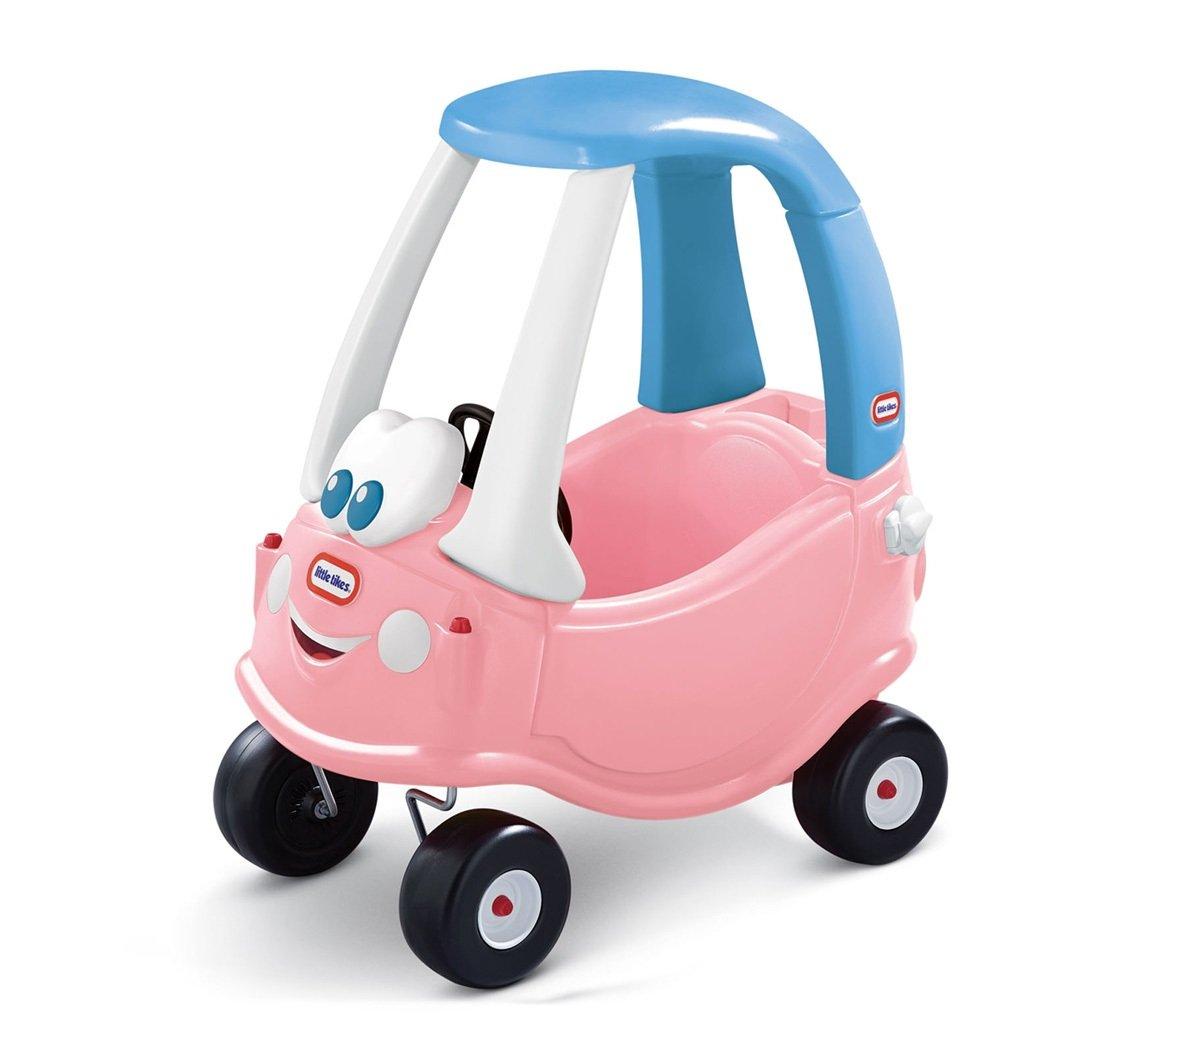 1. Little Tikes Princess Cozy Coupe - 30th Anniversary